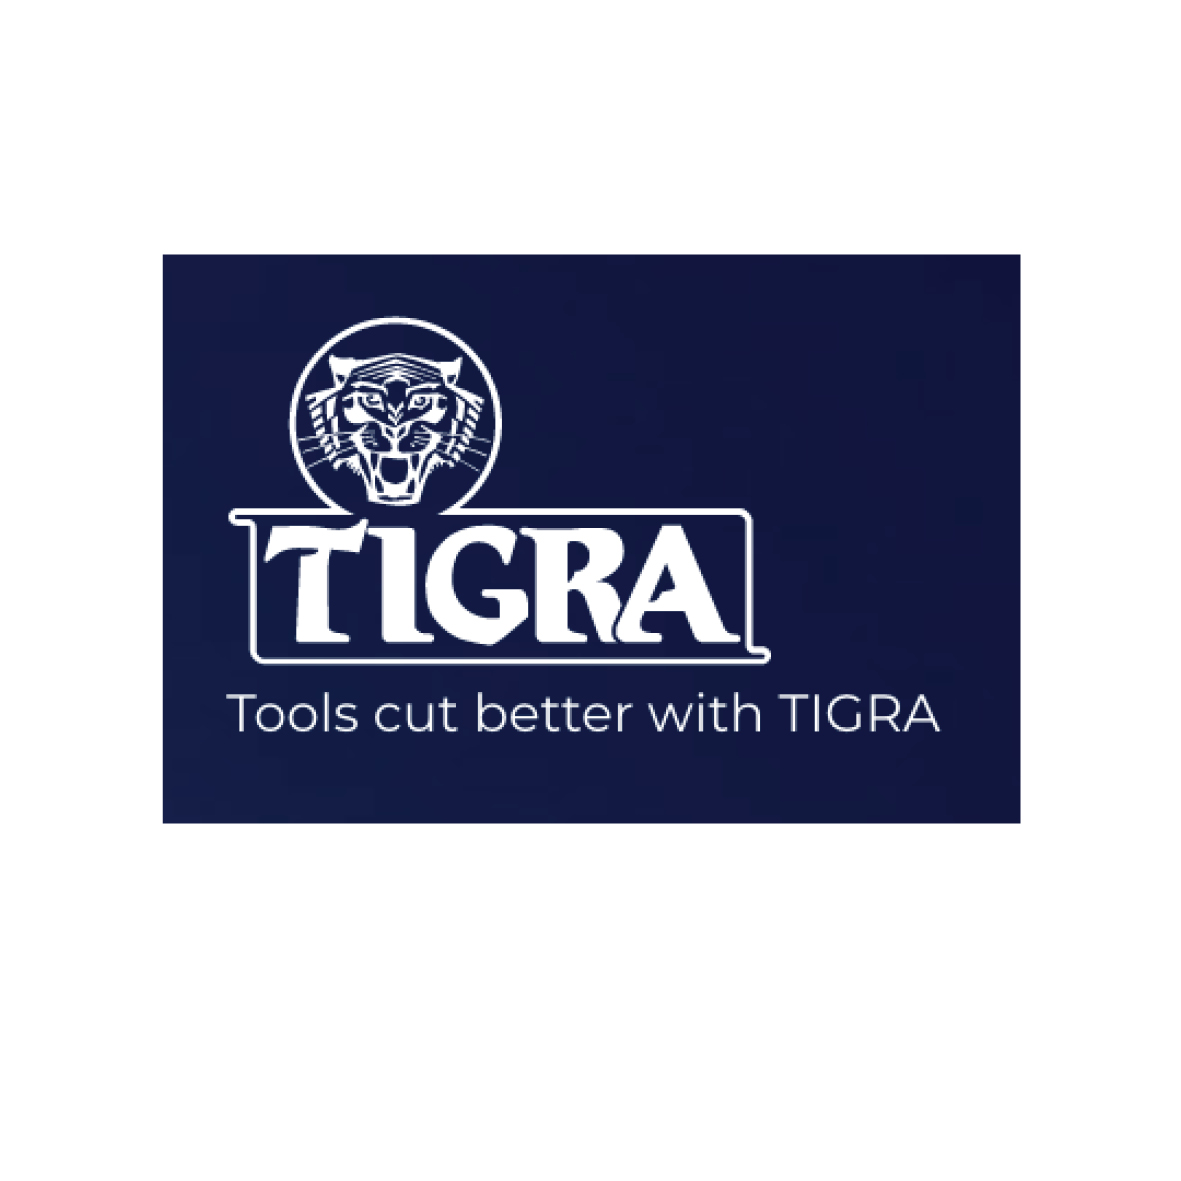 As one of the first carbide manufacturers, TIGRA developed special carbide grades for many applications to improve tool life, machining speed and surface quality in woodworking.